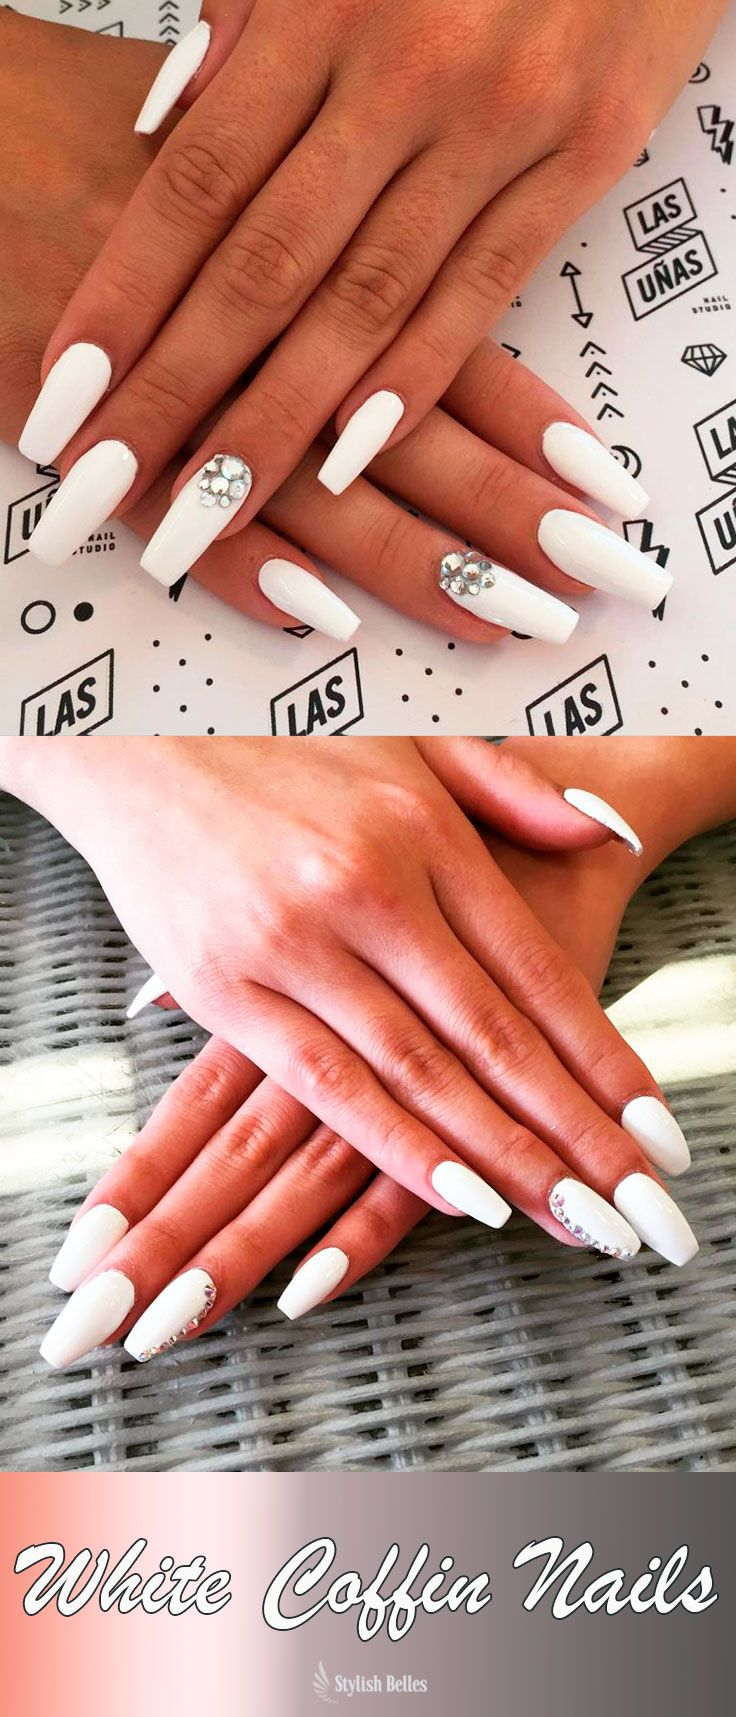 The Best Coffin Nails Ideas That Suit Everyone With Images Shiny Nails Designs White Coffin Nails White Nails